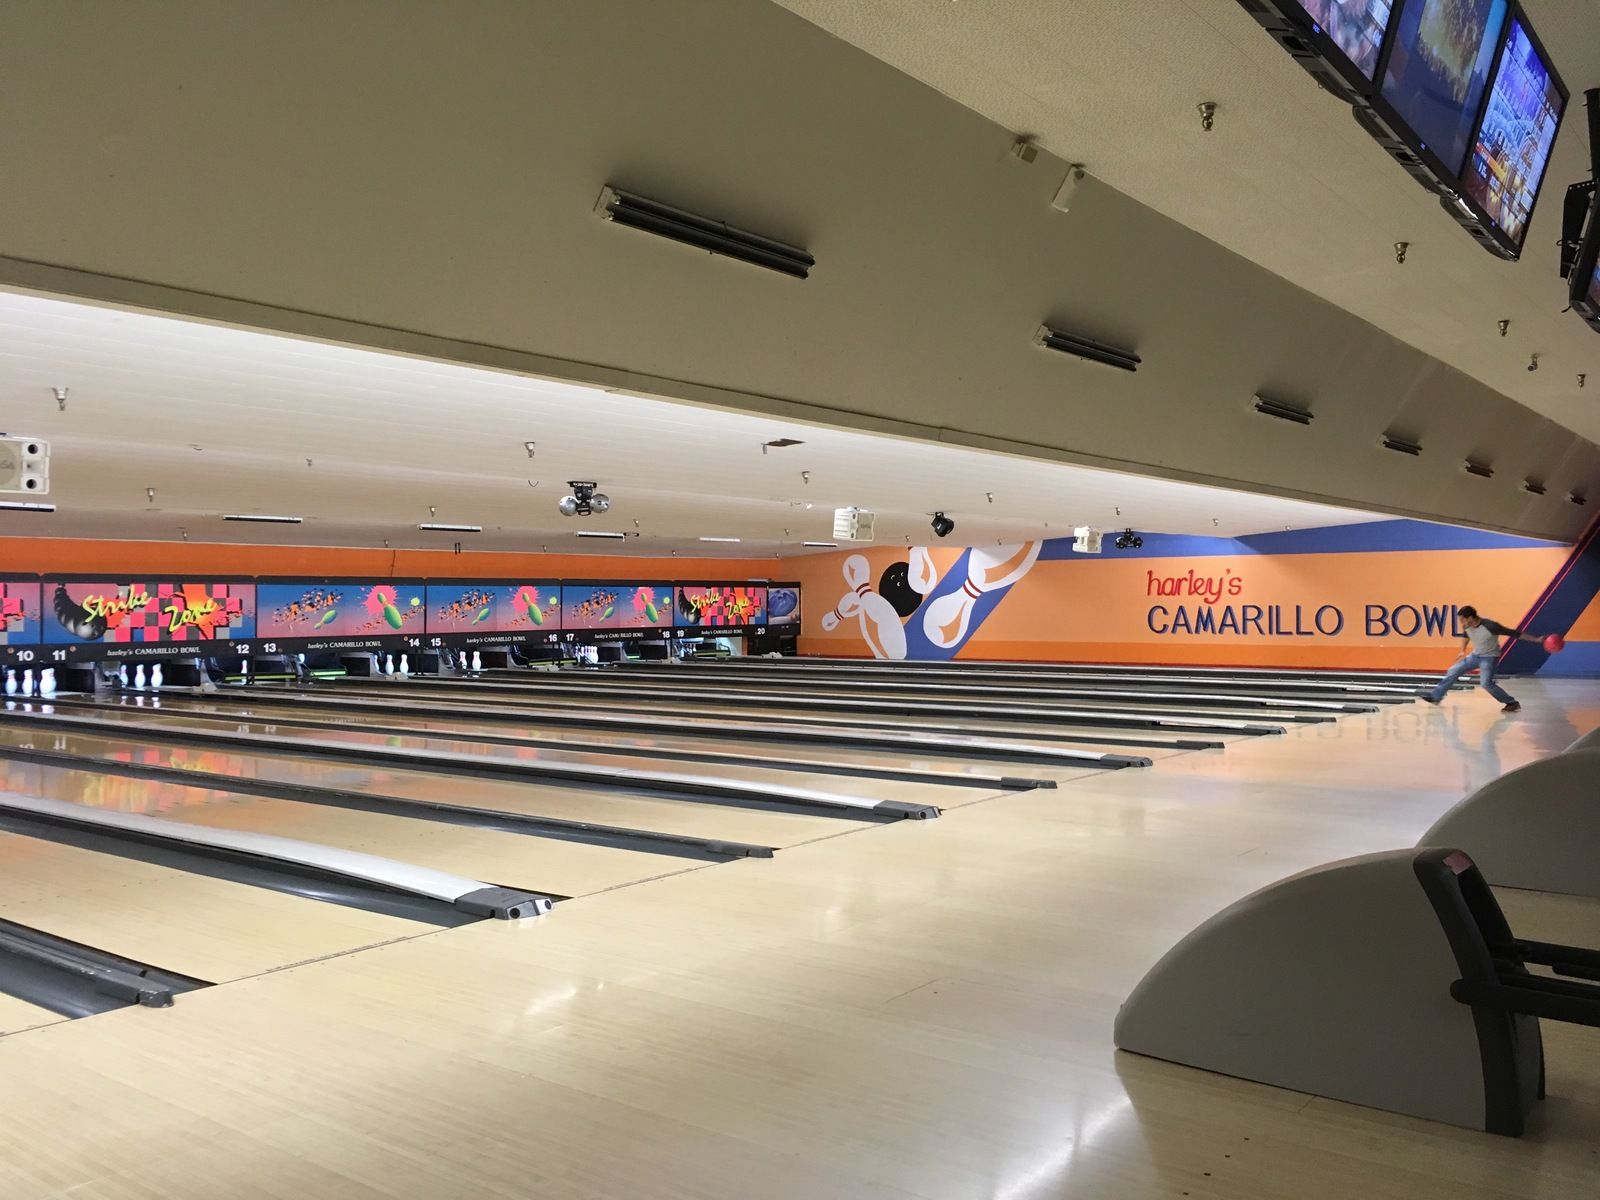 This Bowling Alley Is Perfect For Families Balls Of Small Sizes And Sorted By Pounds Down To 7 Bumpers Avail California Kids Camarillo California Camarillo